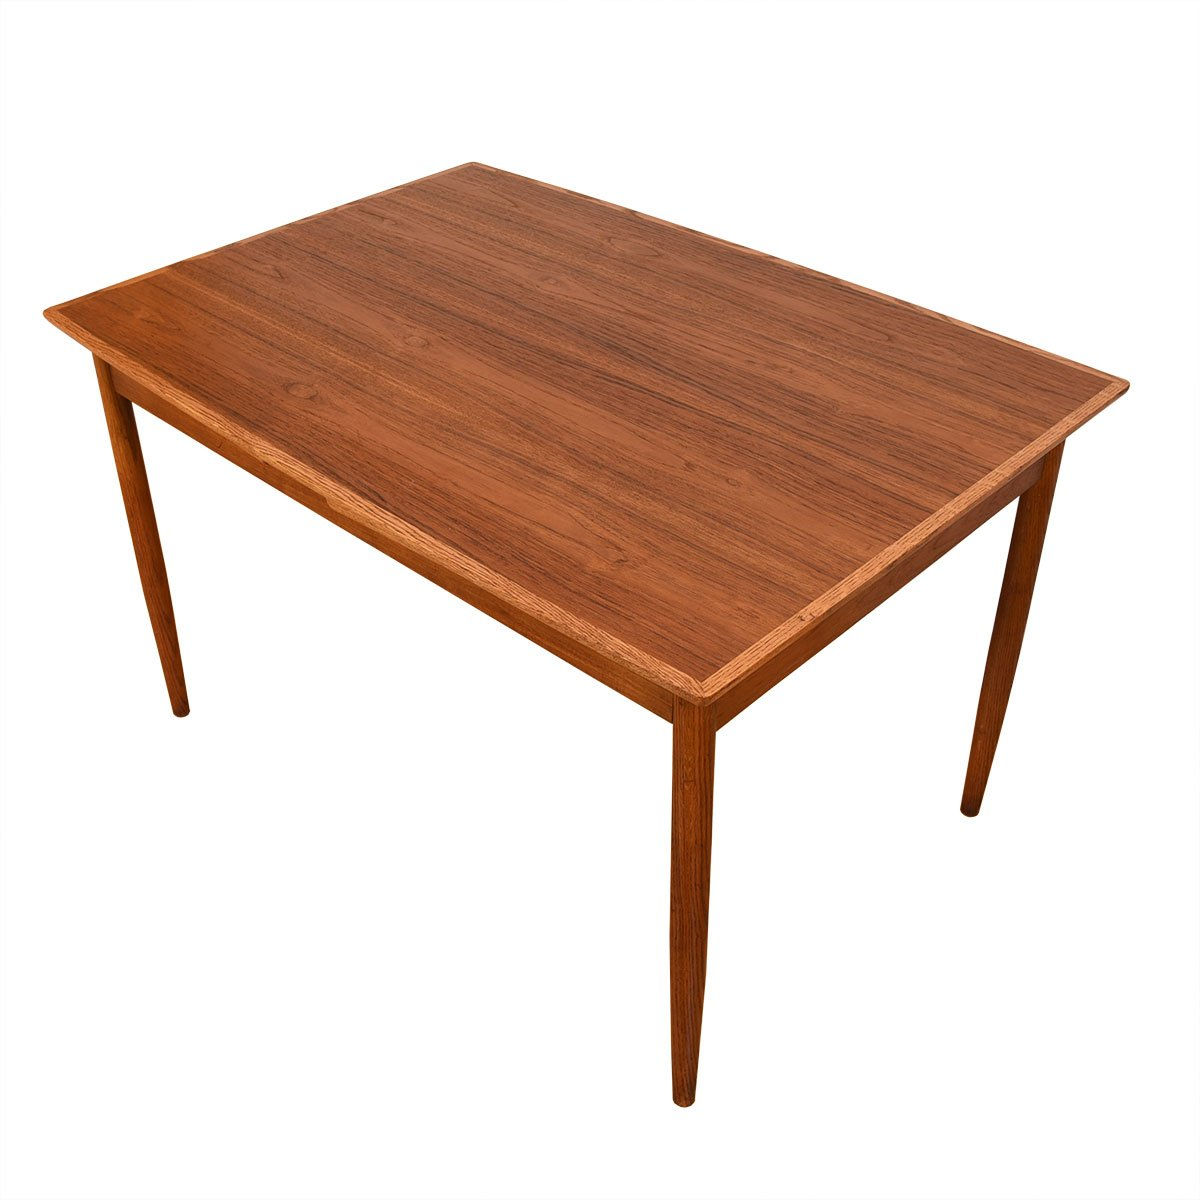 Two-Tone Danish Modern Walnut Small Expanding Dining Table